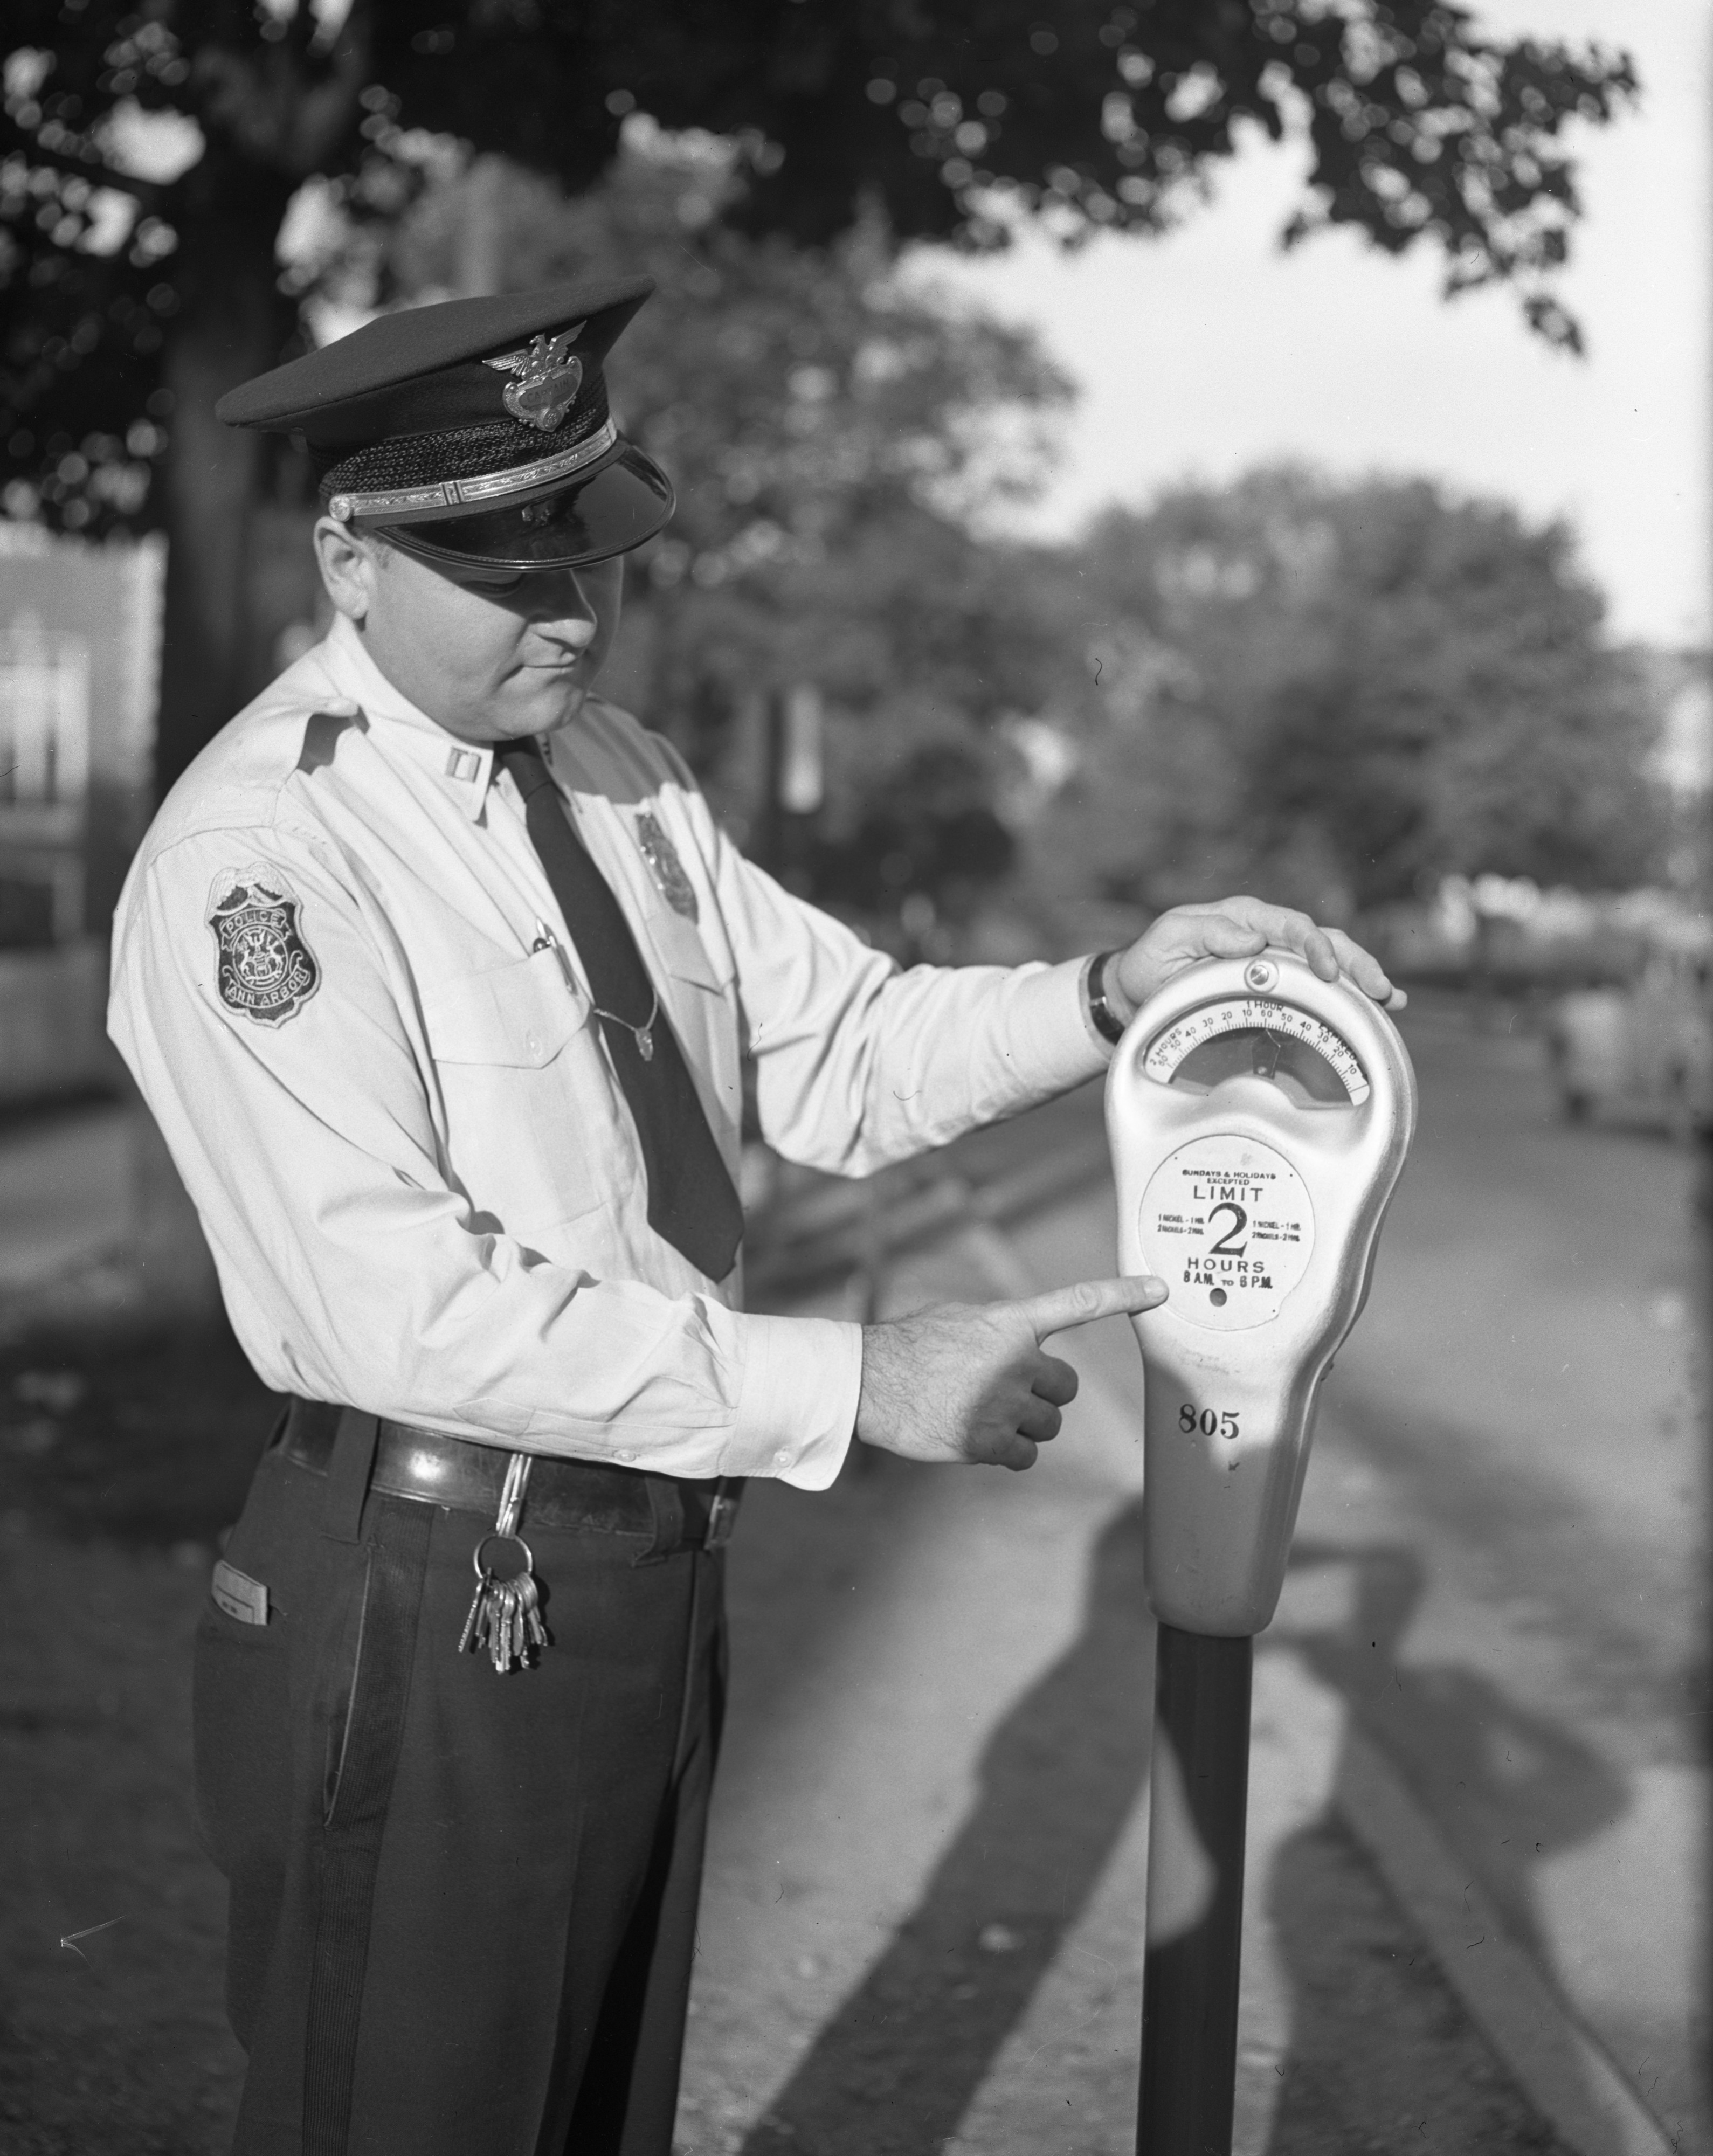 Ann Arbor Police Capt. Rolland Gainsley Demonstrates New Two-Hour Parking Meter, September 1948 image